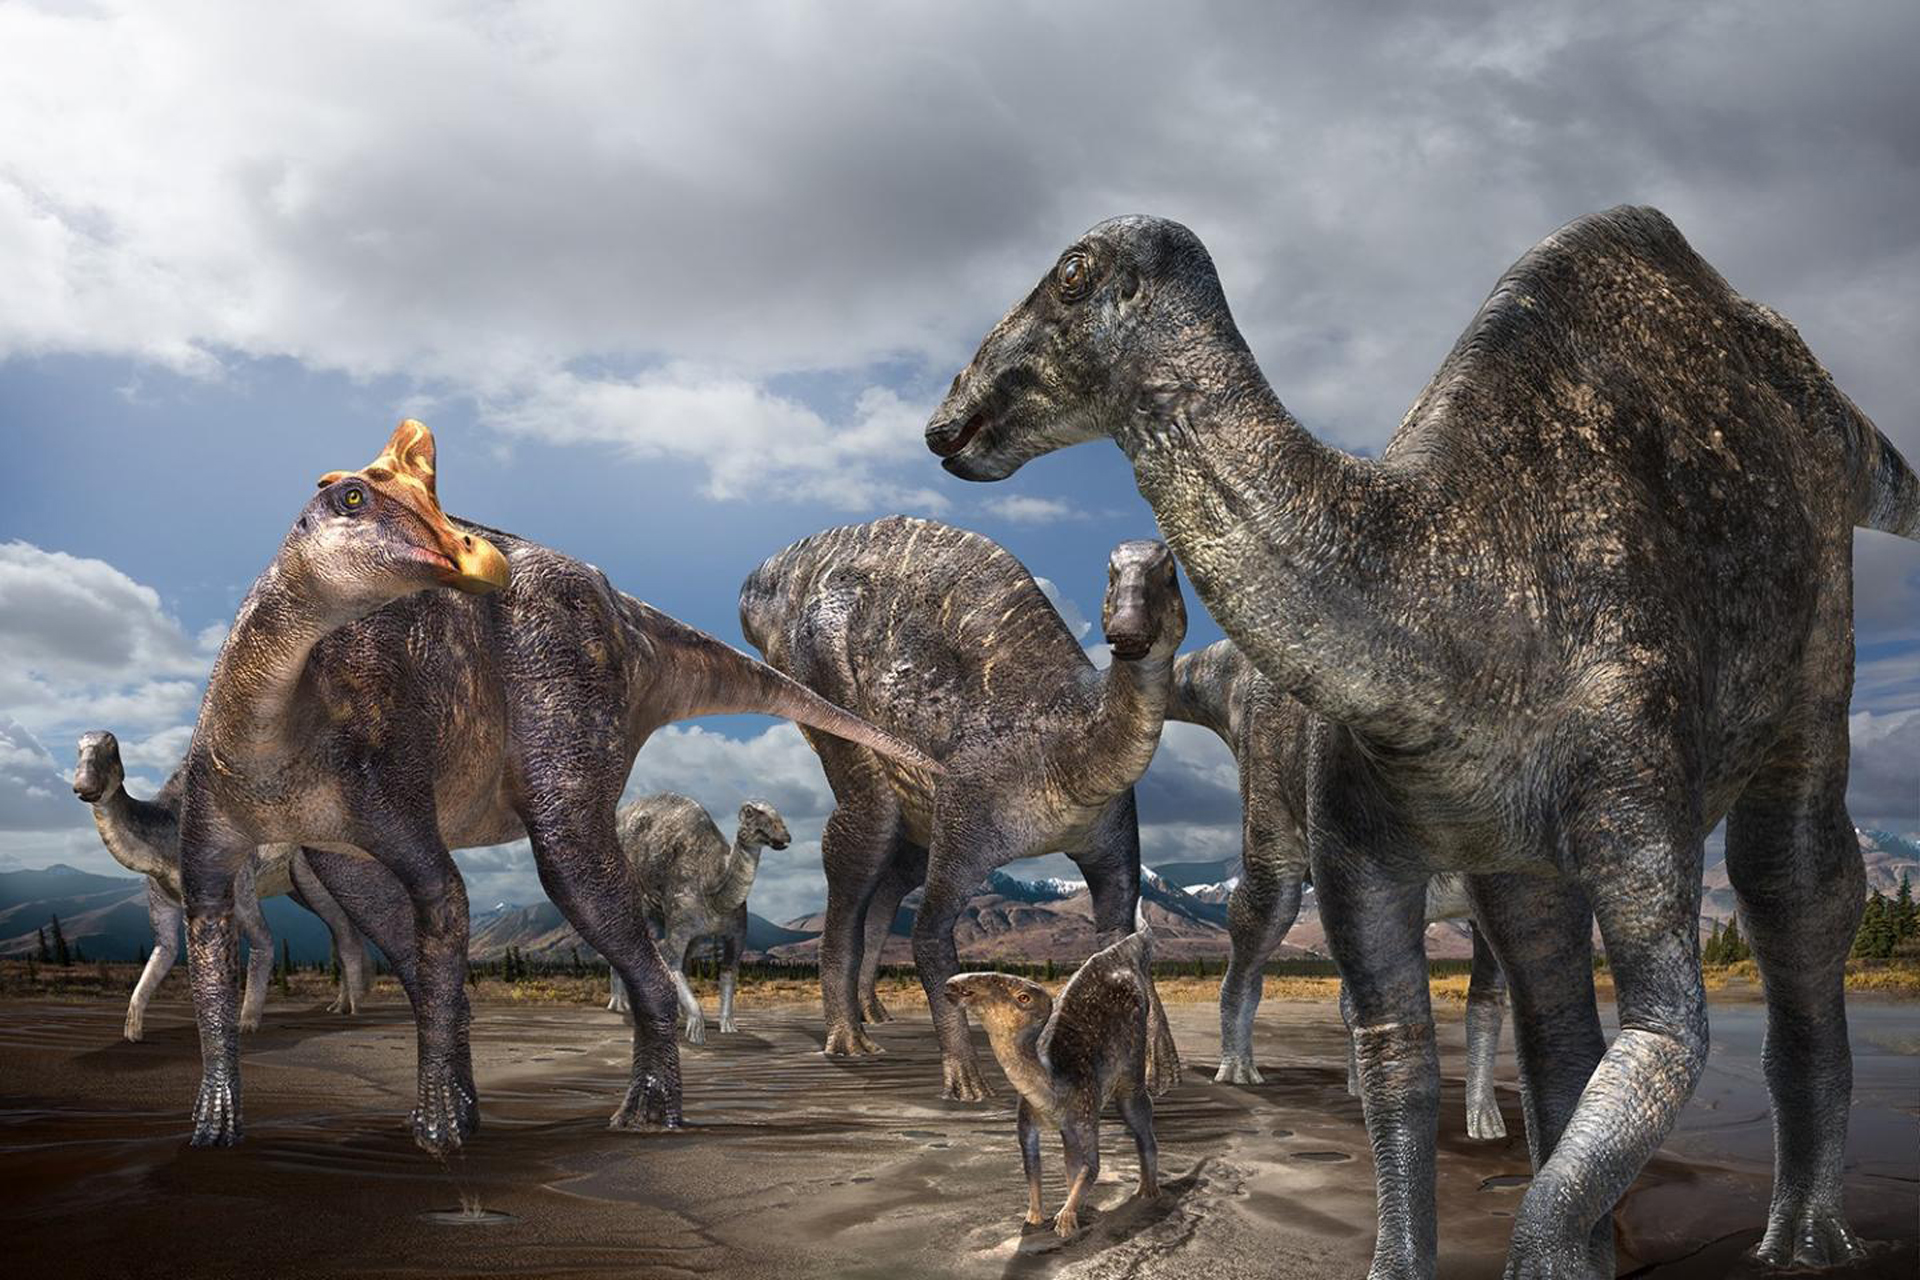 Minute by minute accounts of how asteroid that wiped out the dinosaurs devastated Earth